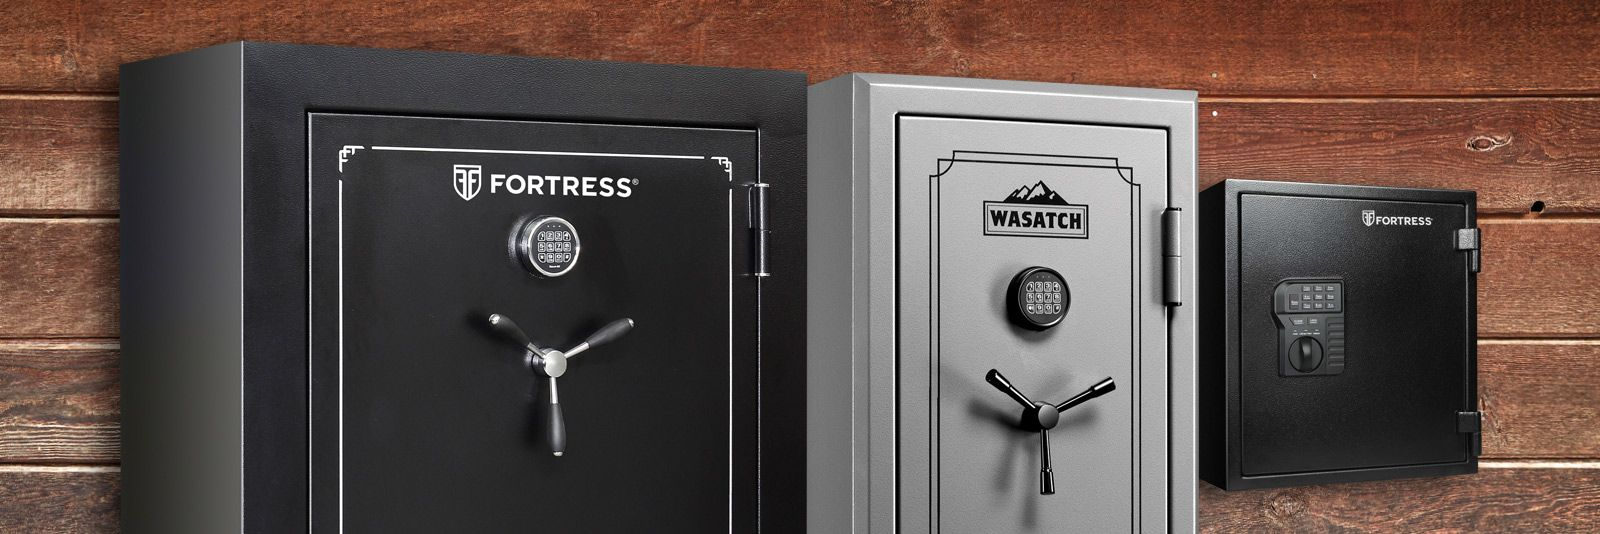 Image shows multiple gun safes in front of a wood panel background.